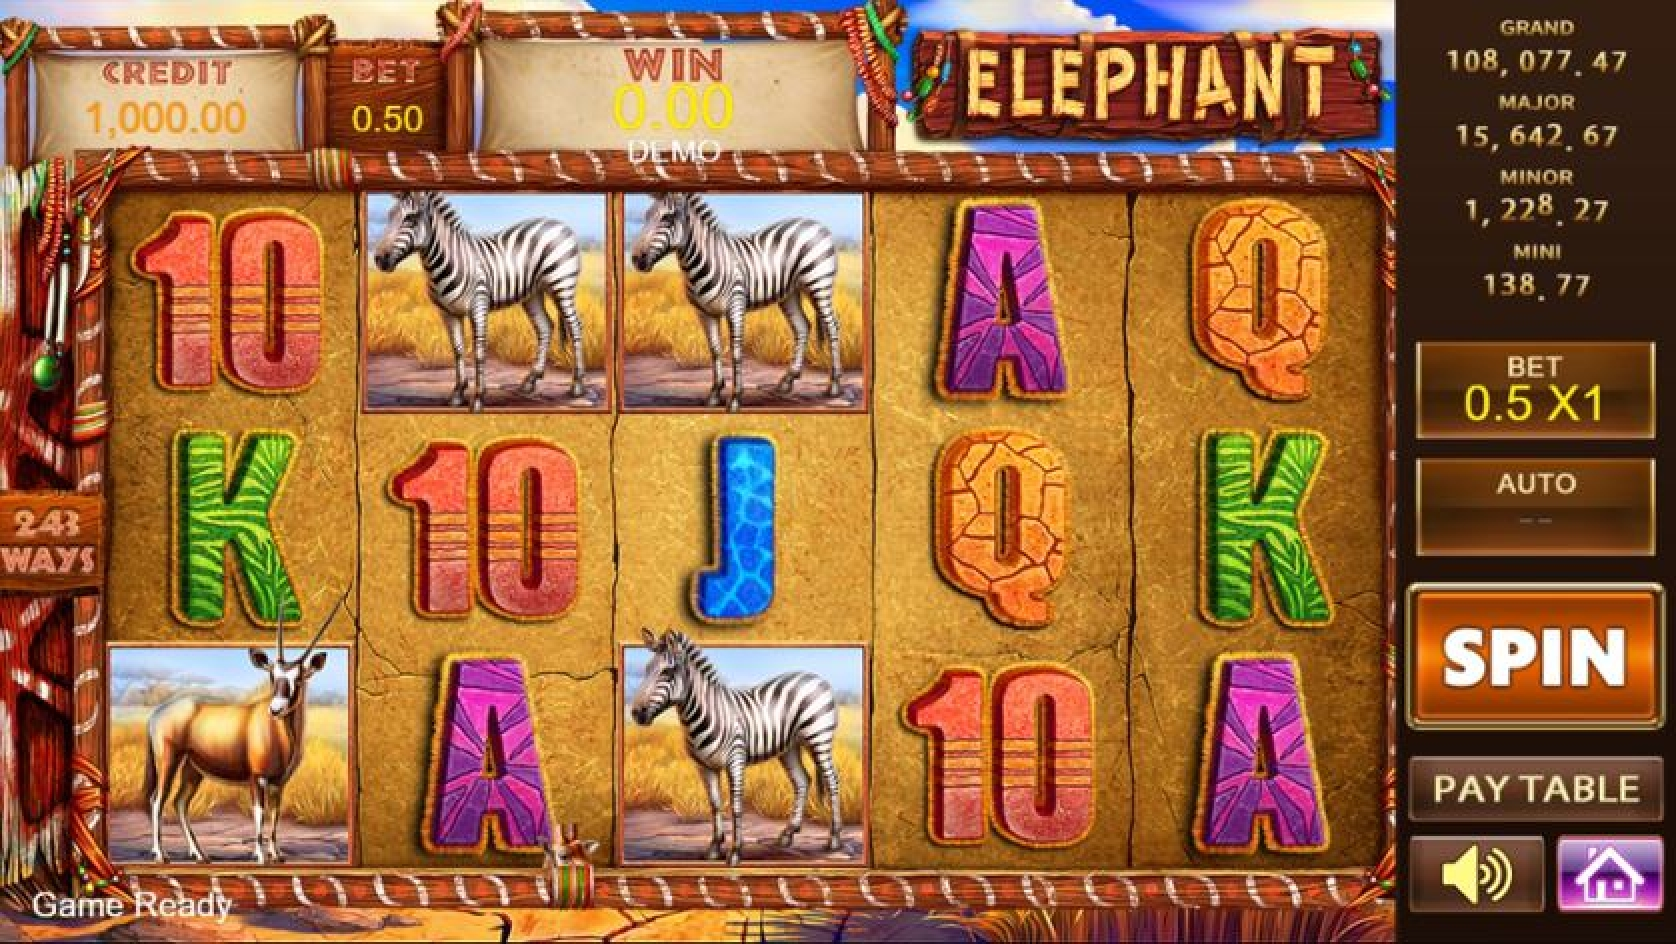 The Elephant (Playstar) Online Slot Demo Game by PlayStar